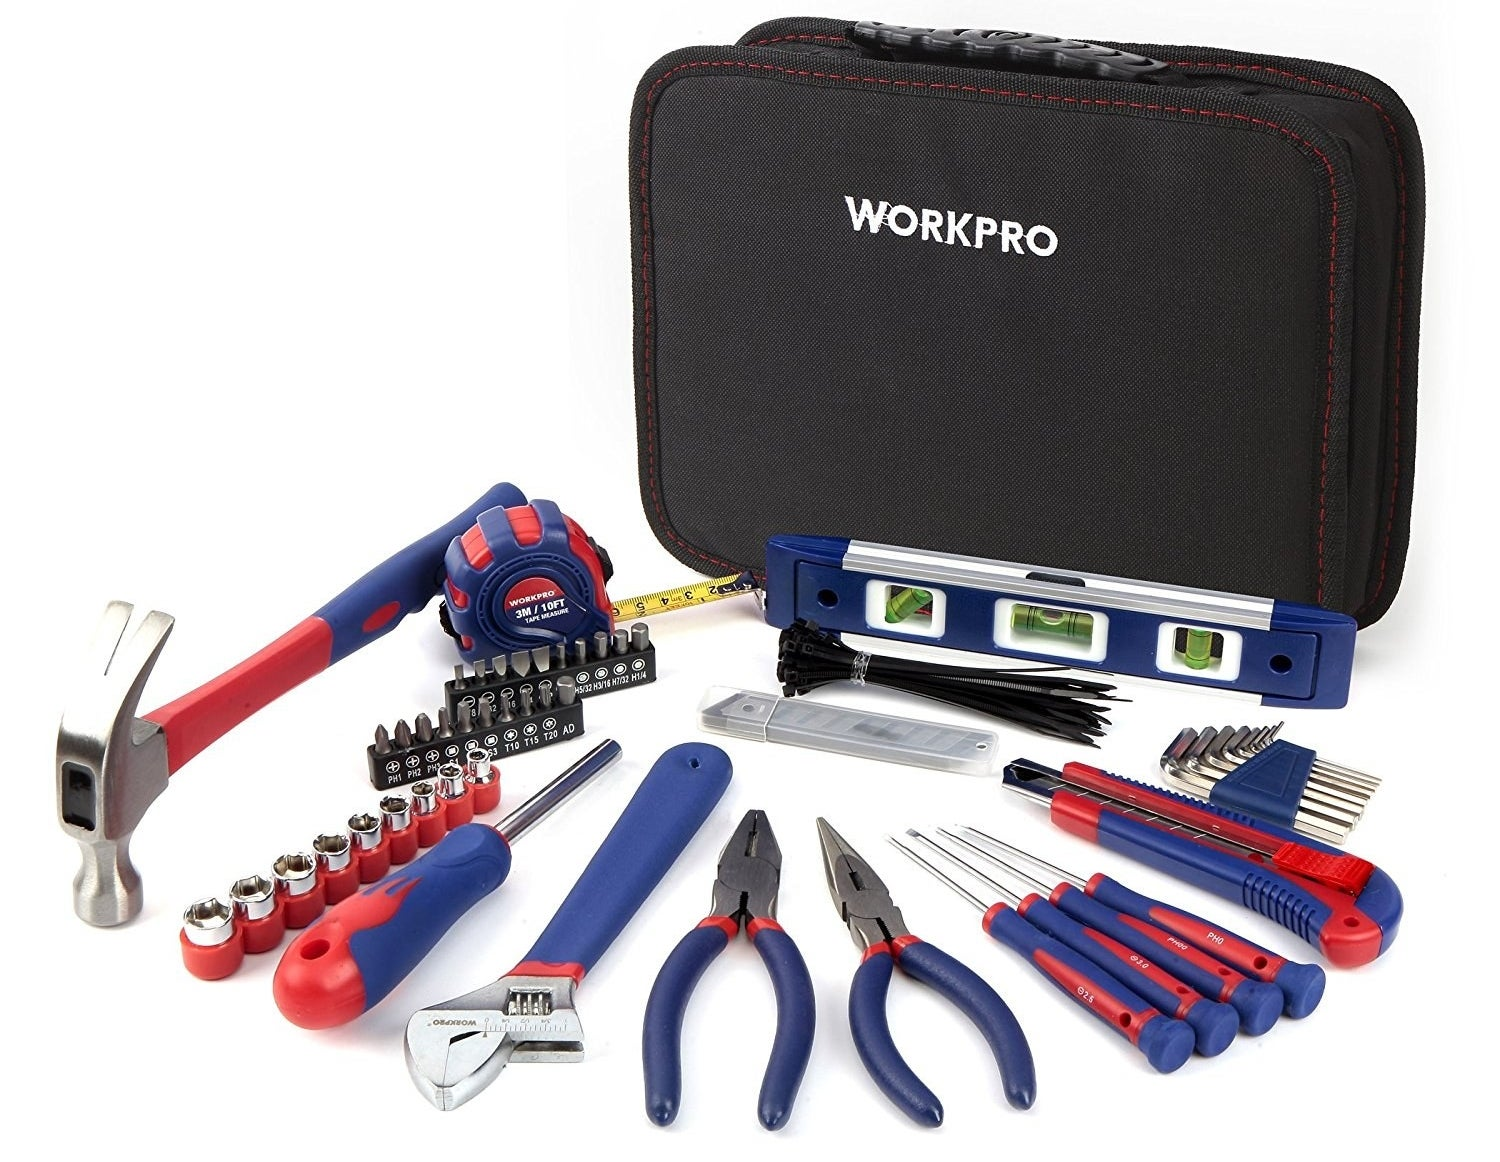 The Workpro tool set